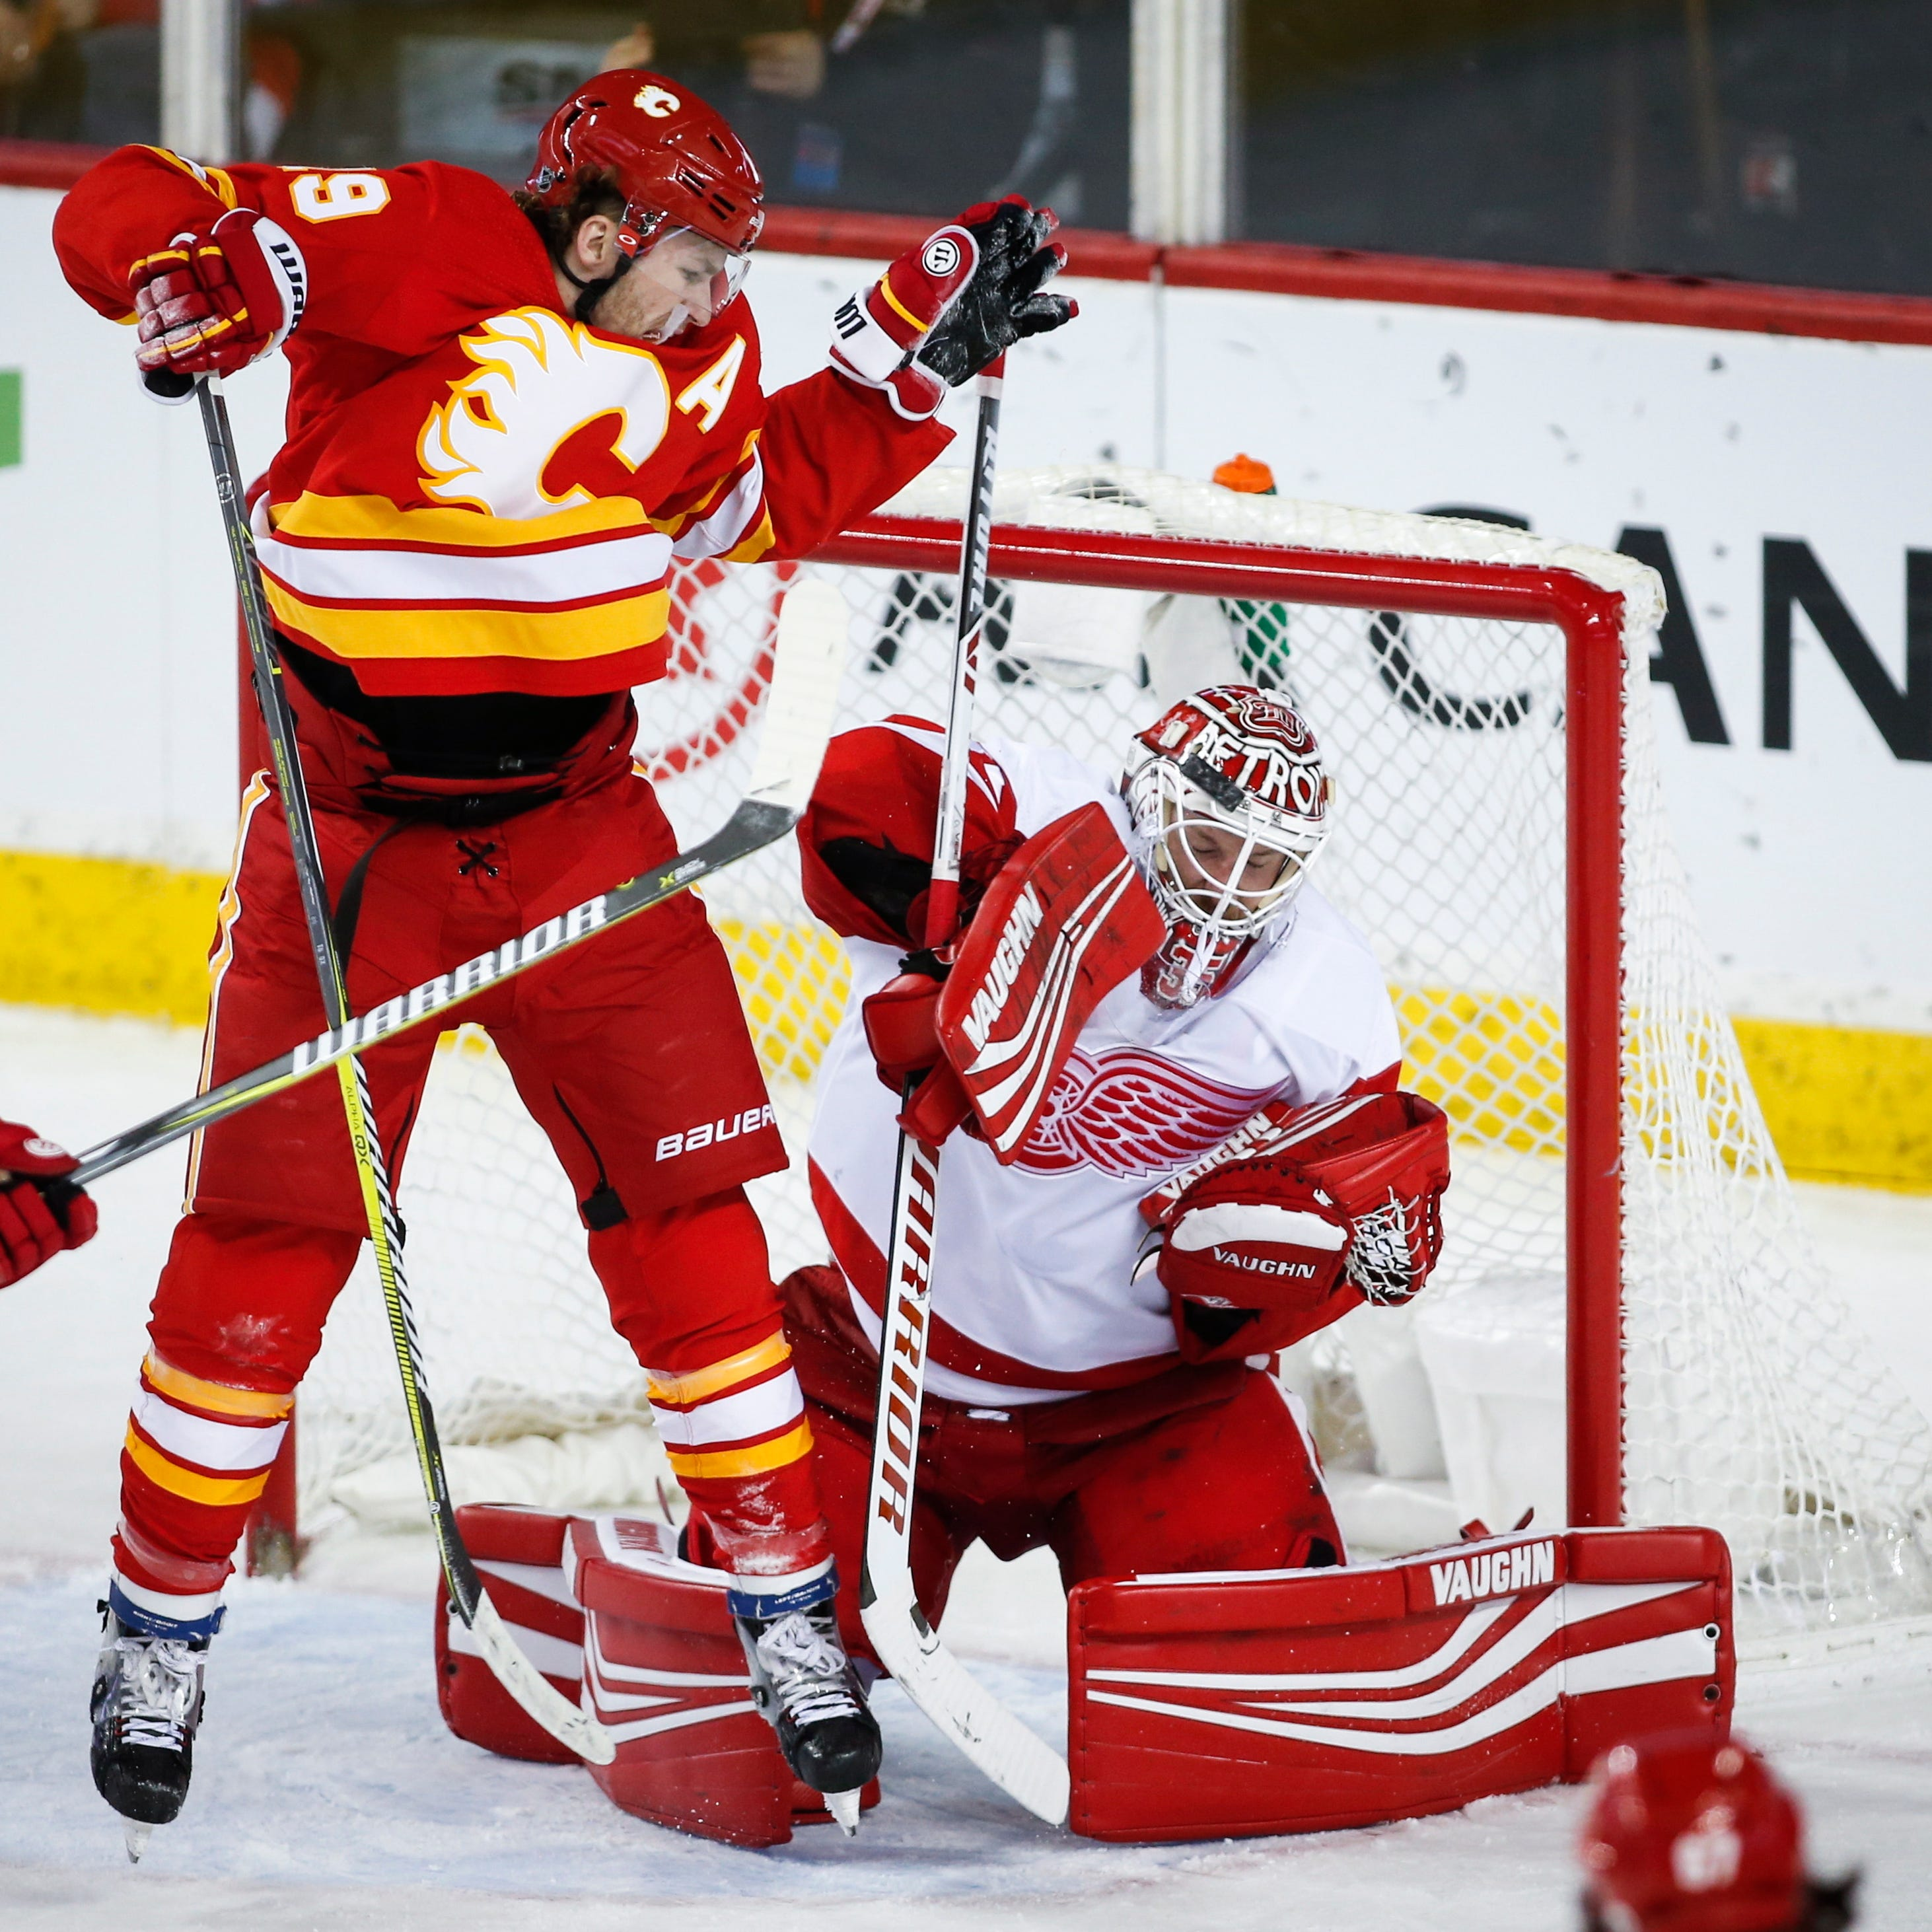 Detroit Red Wings burned by Calgary Flames, blow another late lead